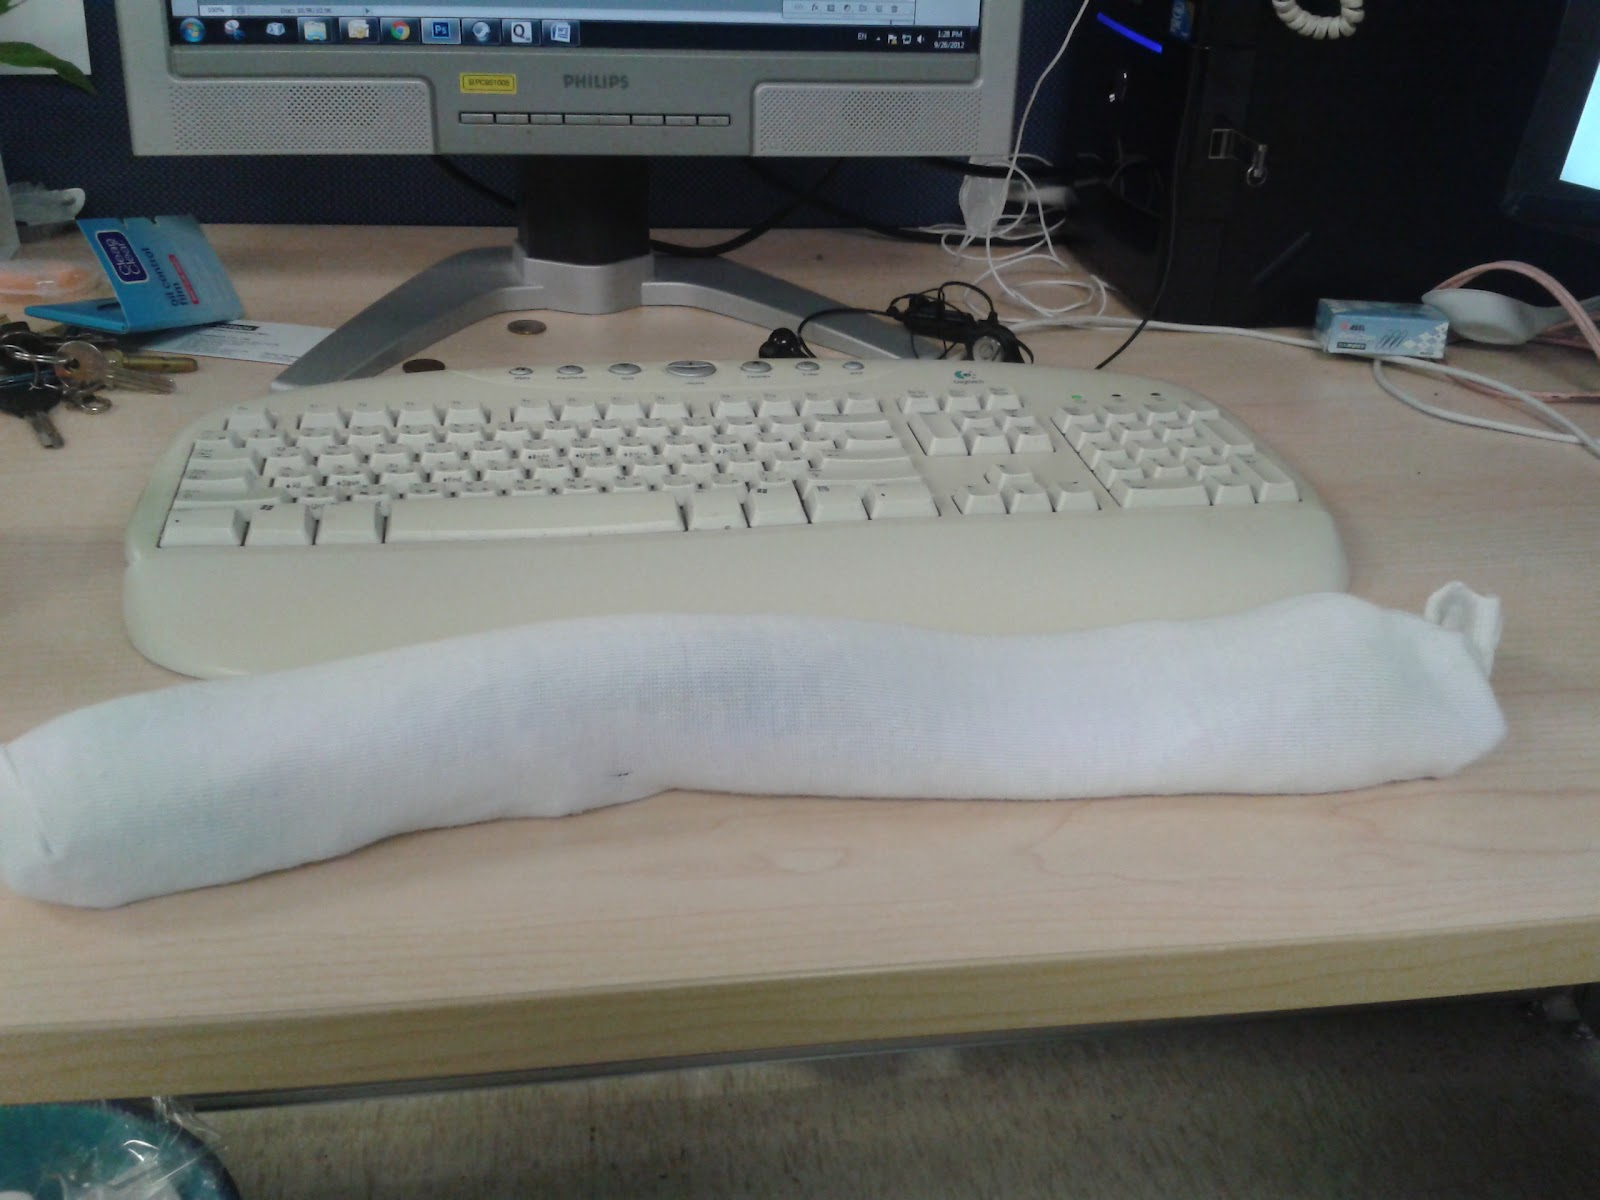 Fun with Words: The man's DIY keyboard wrist rest